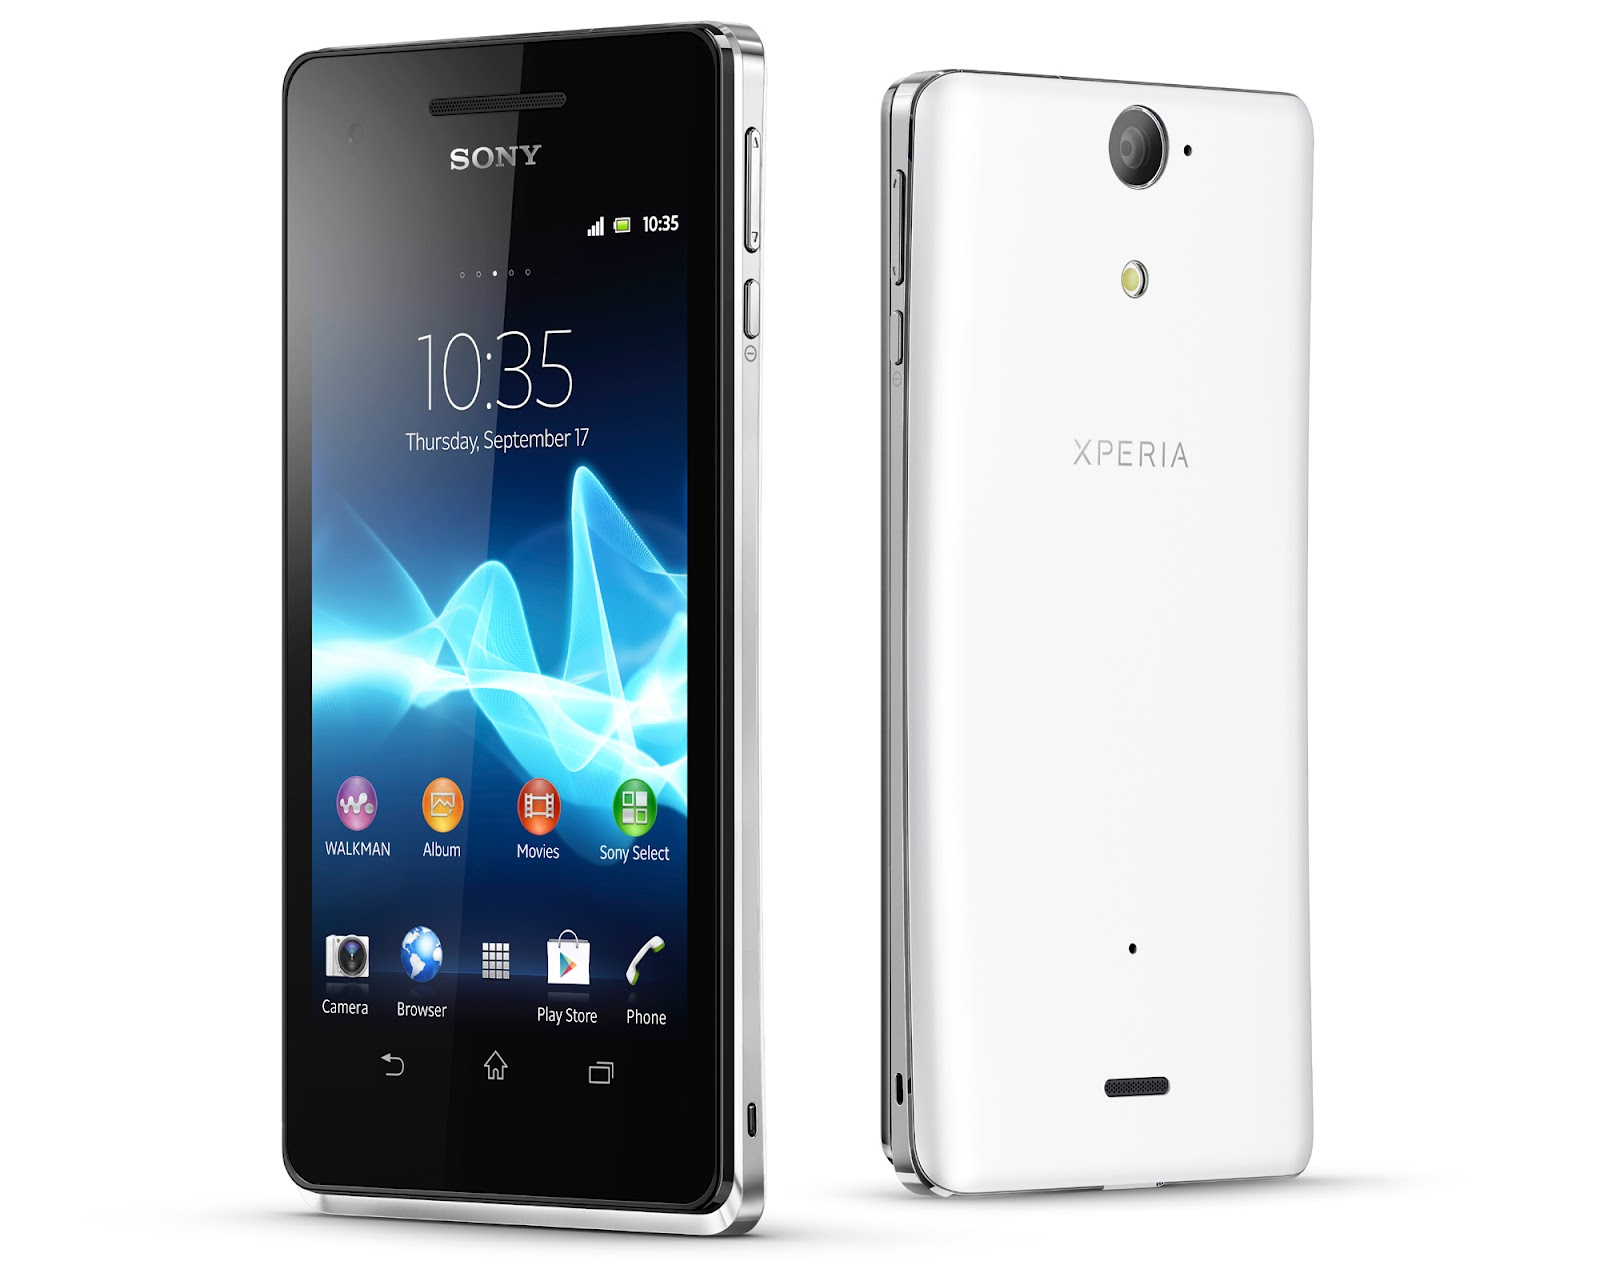 Smartphone: Sony Xperia V Android Specifications - Sony ...